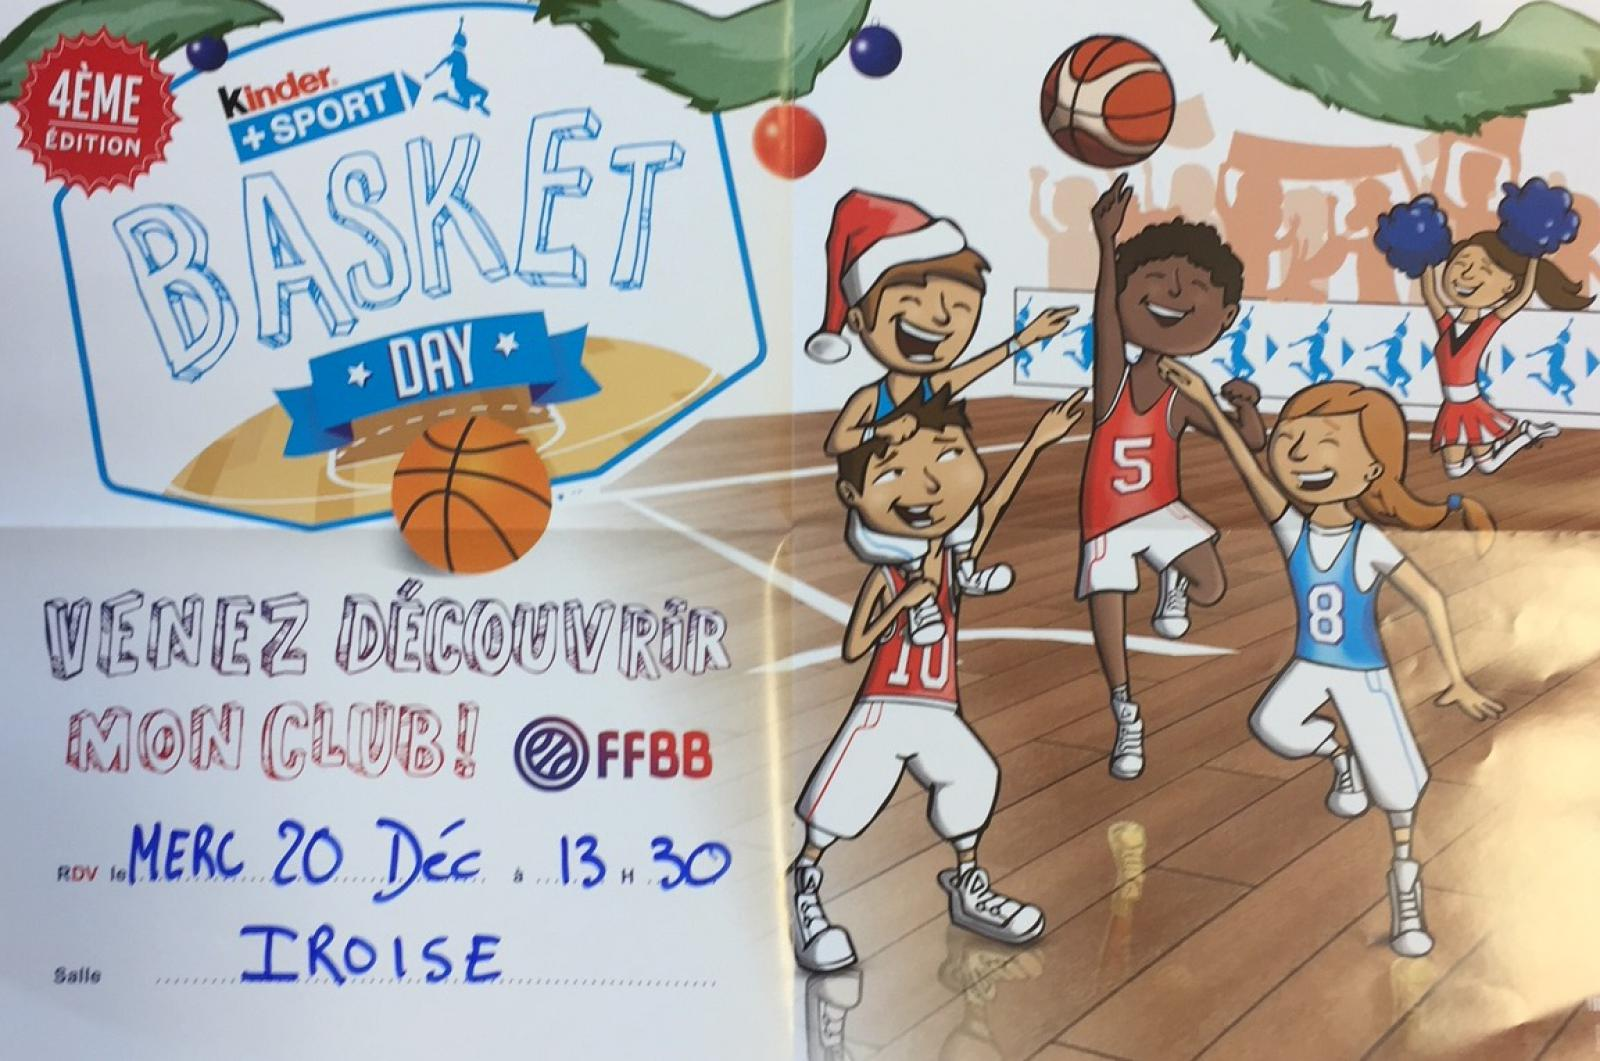 Basket Kinder DAY